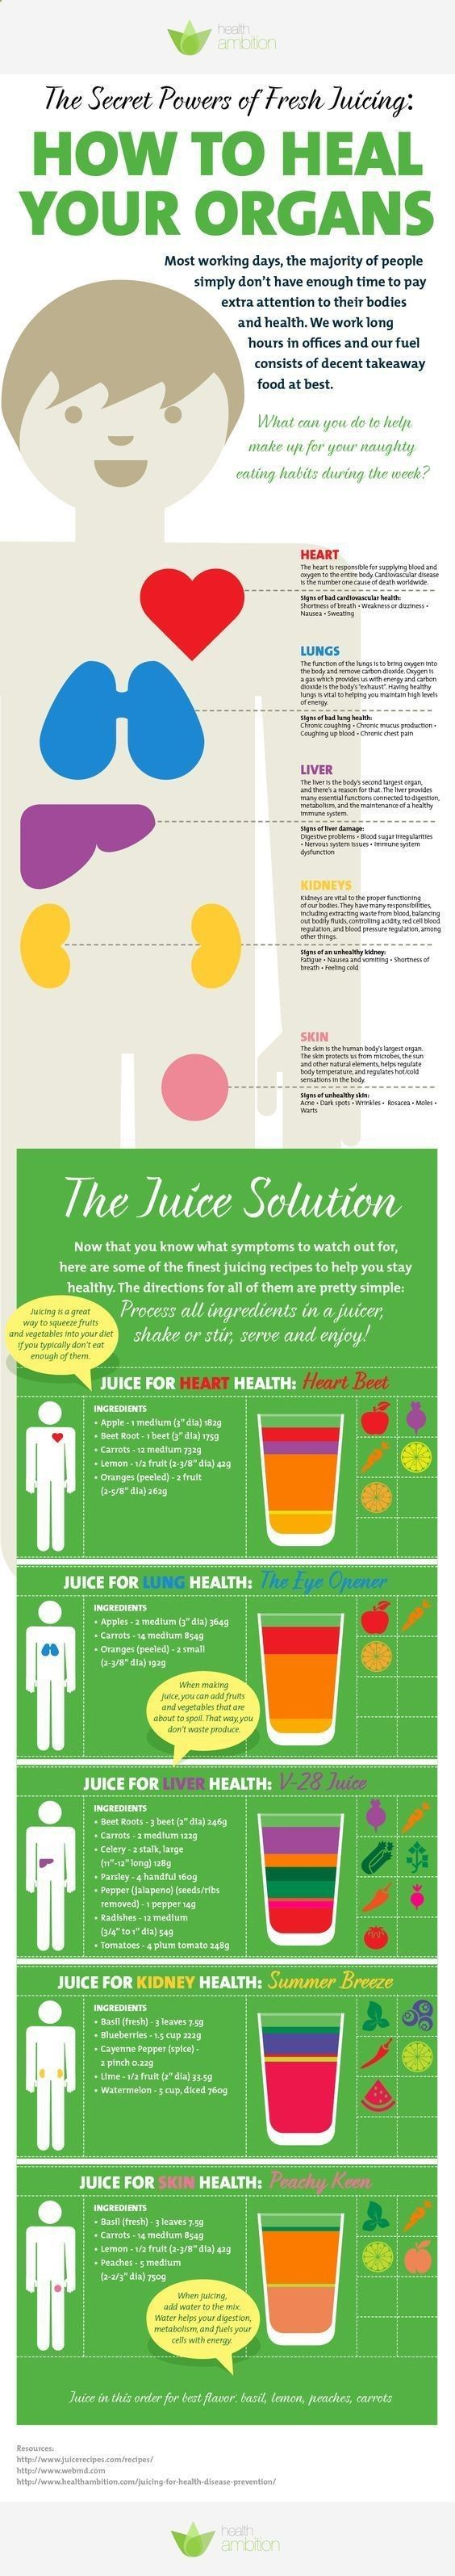 How to Heal Your Organs with the Secret Powers of Fruits Vegetables (Fresh Juice) | David Kovacs for Elephant Journal | I don't advocate juicing. This infographic offers up the fruits and veggies that can, indeed, support the health of your various organs. My suggestion: Make a great green salad (leave the peel on cucumbers, if you use them), and eat a big bowl of it, every day, along with a variety of fruit. Peace.